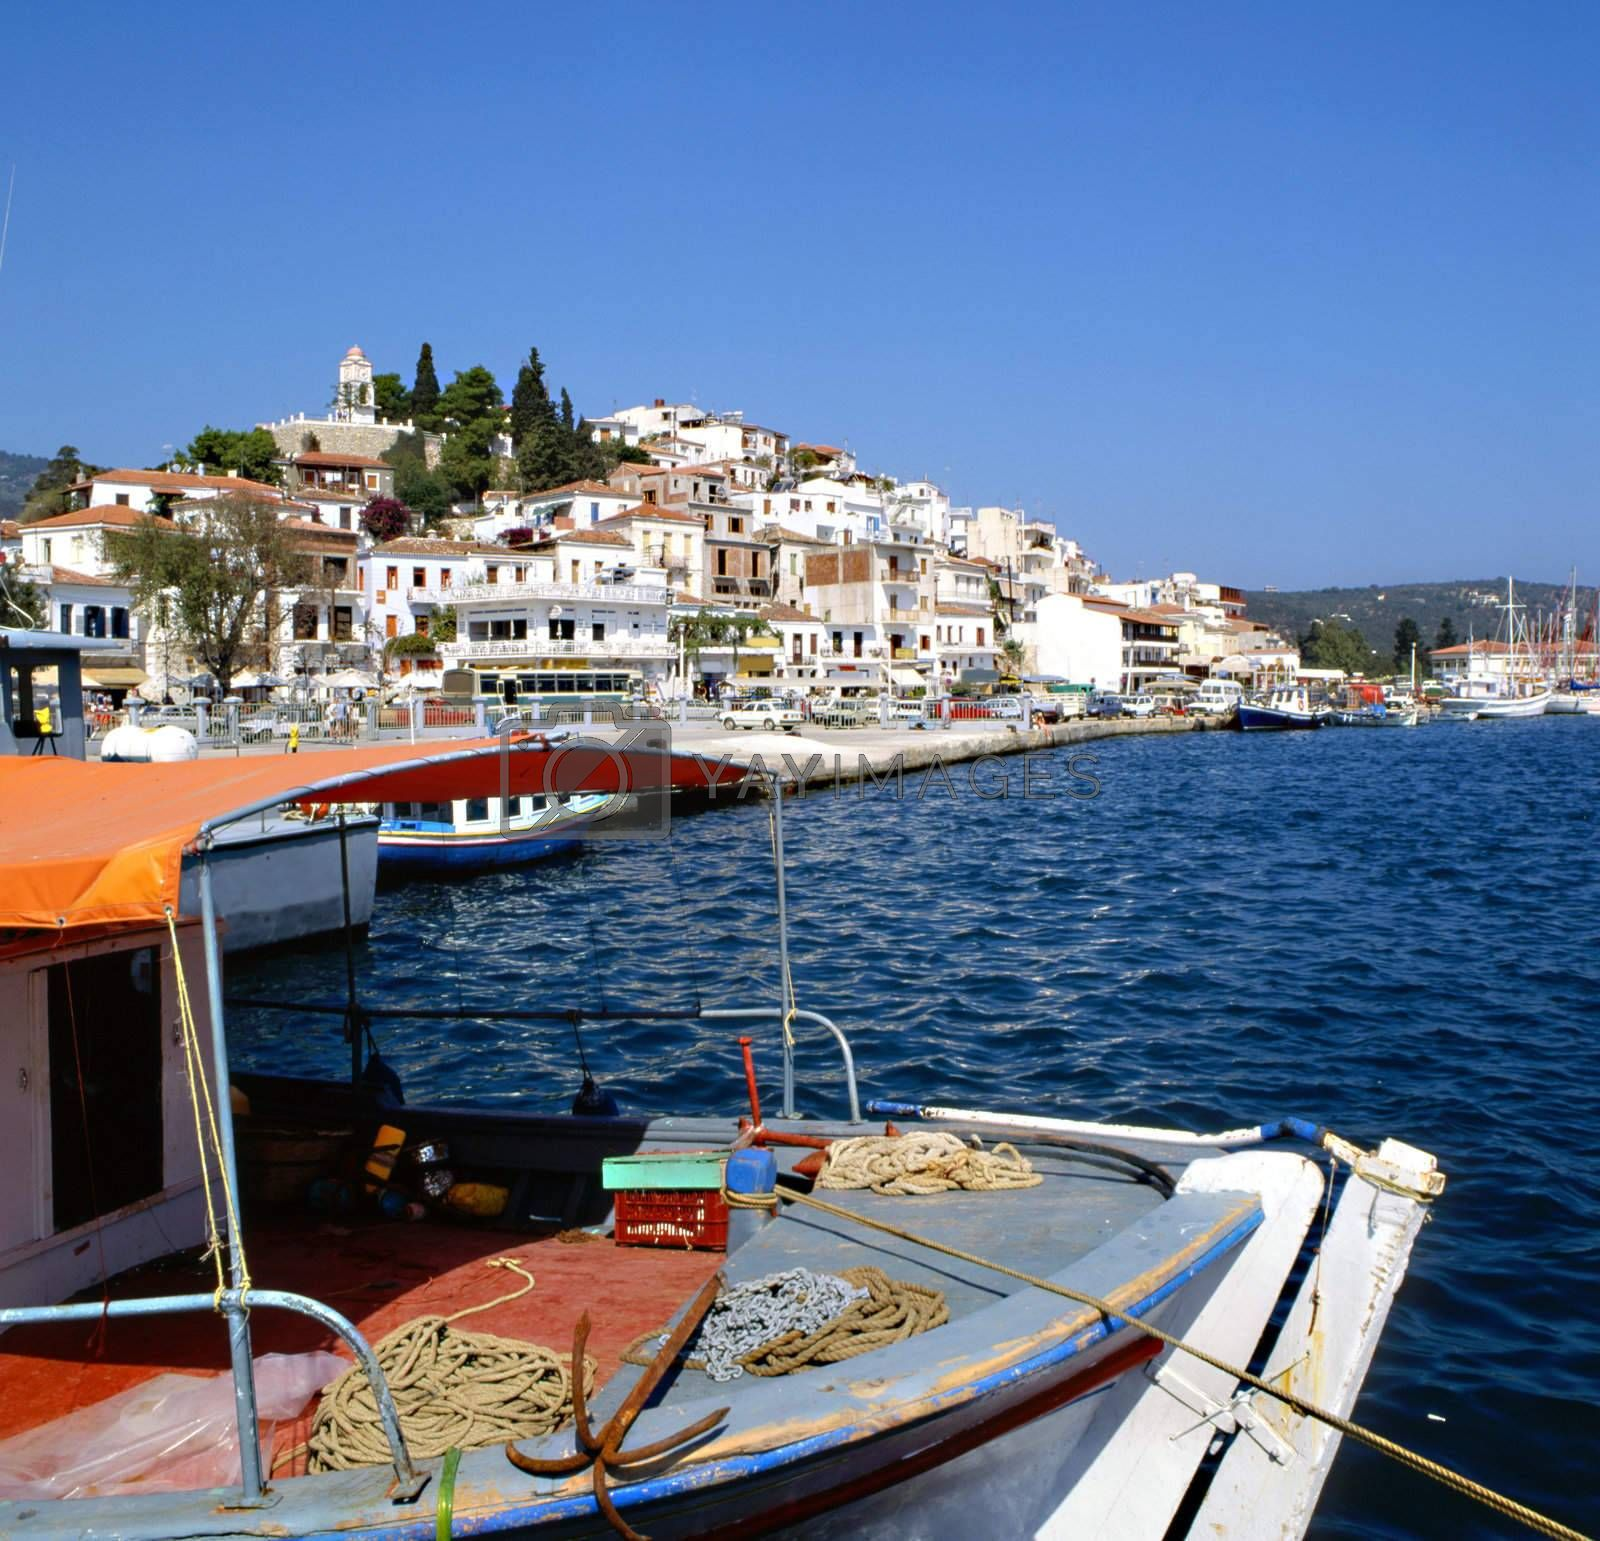 Skiathos port by runamock